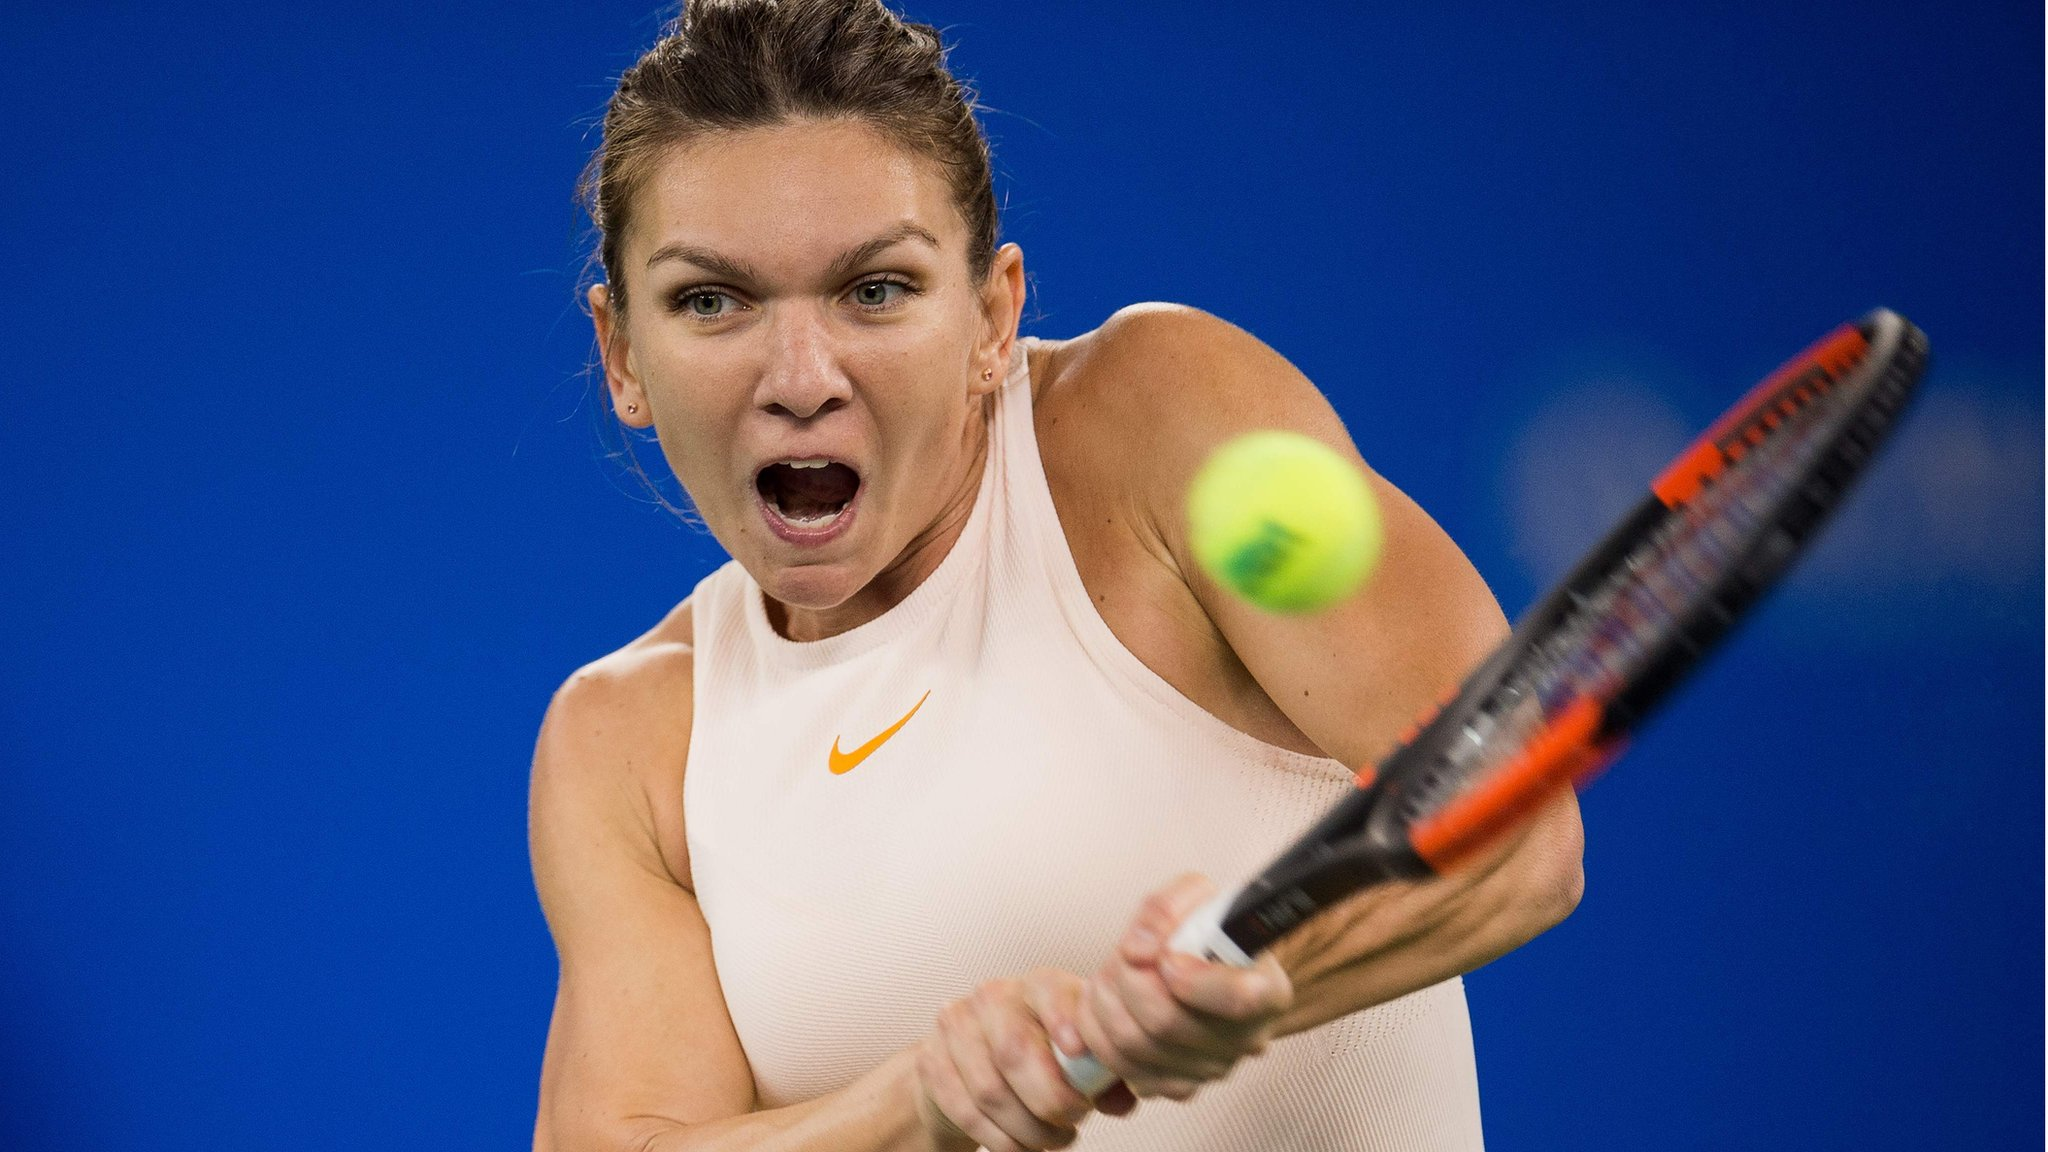 Injured Halep withdraws from WTA Finals